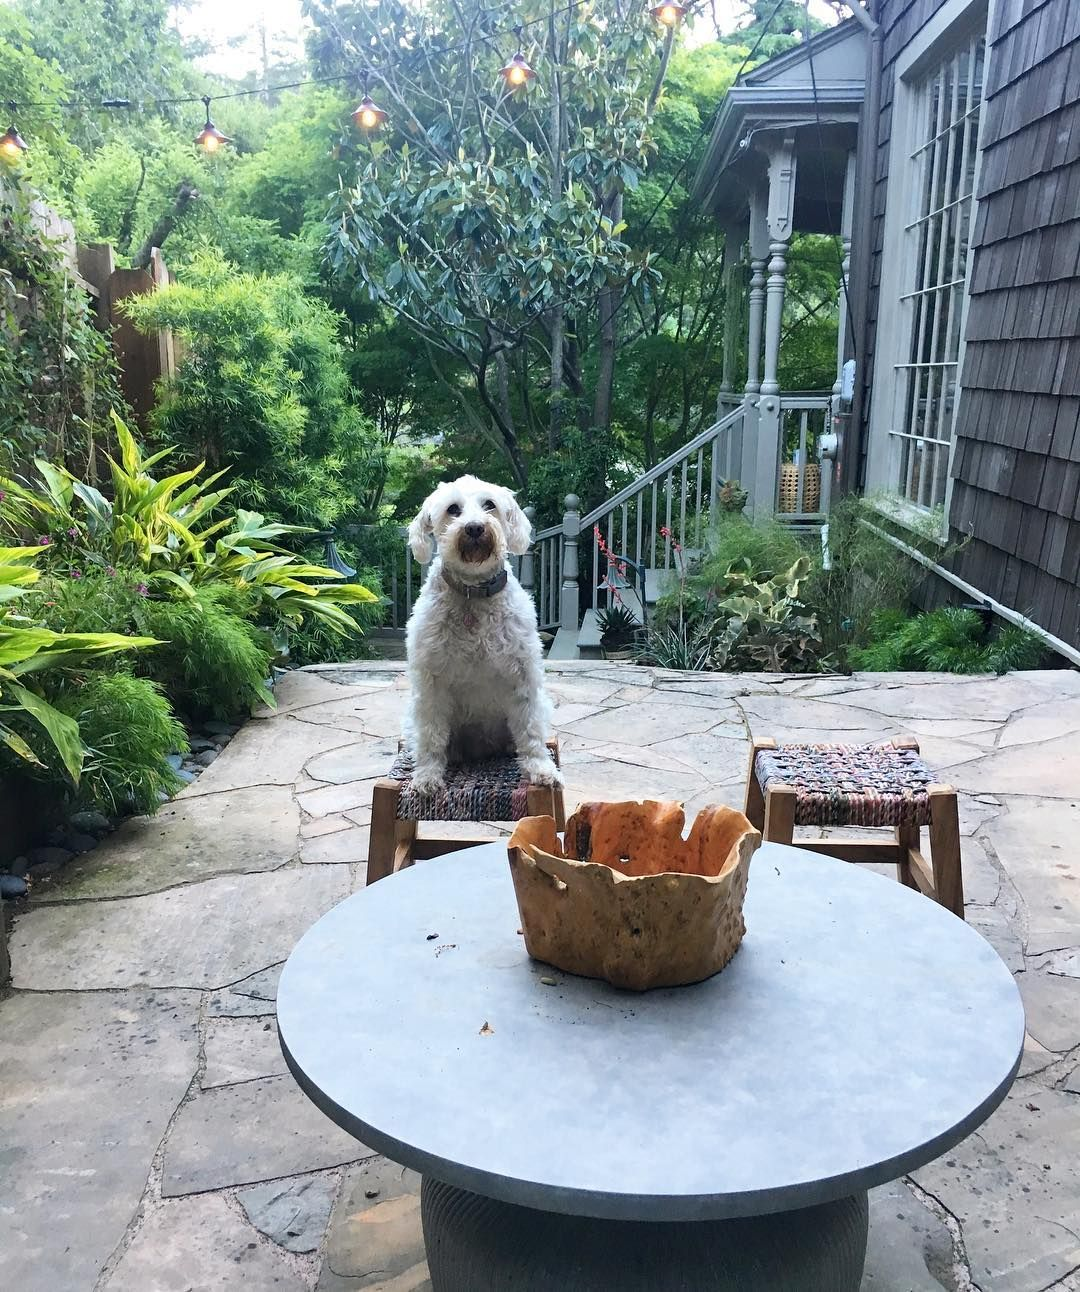 """""""Oh, Maggie I couldn't have tried any more You lured me away from home, just to save you from being alone You stole my soul and that's a pain I can do without..."""". #jungalow #sideyard #whiteschnauzer #dogstagram #rodstewart #maggie #landscape #gardem #jardim #metgala #california #flora #wanderlust #wanderluster #interiorstyling #interiordesign #bohemianhome #boanoite"""